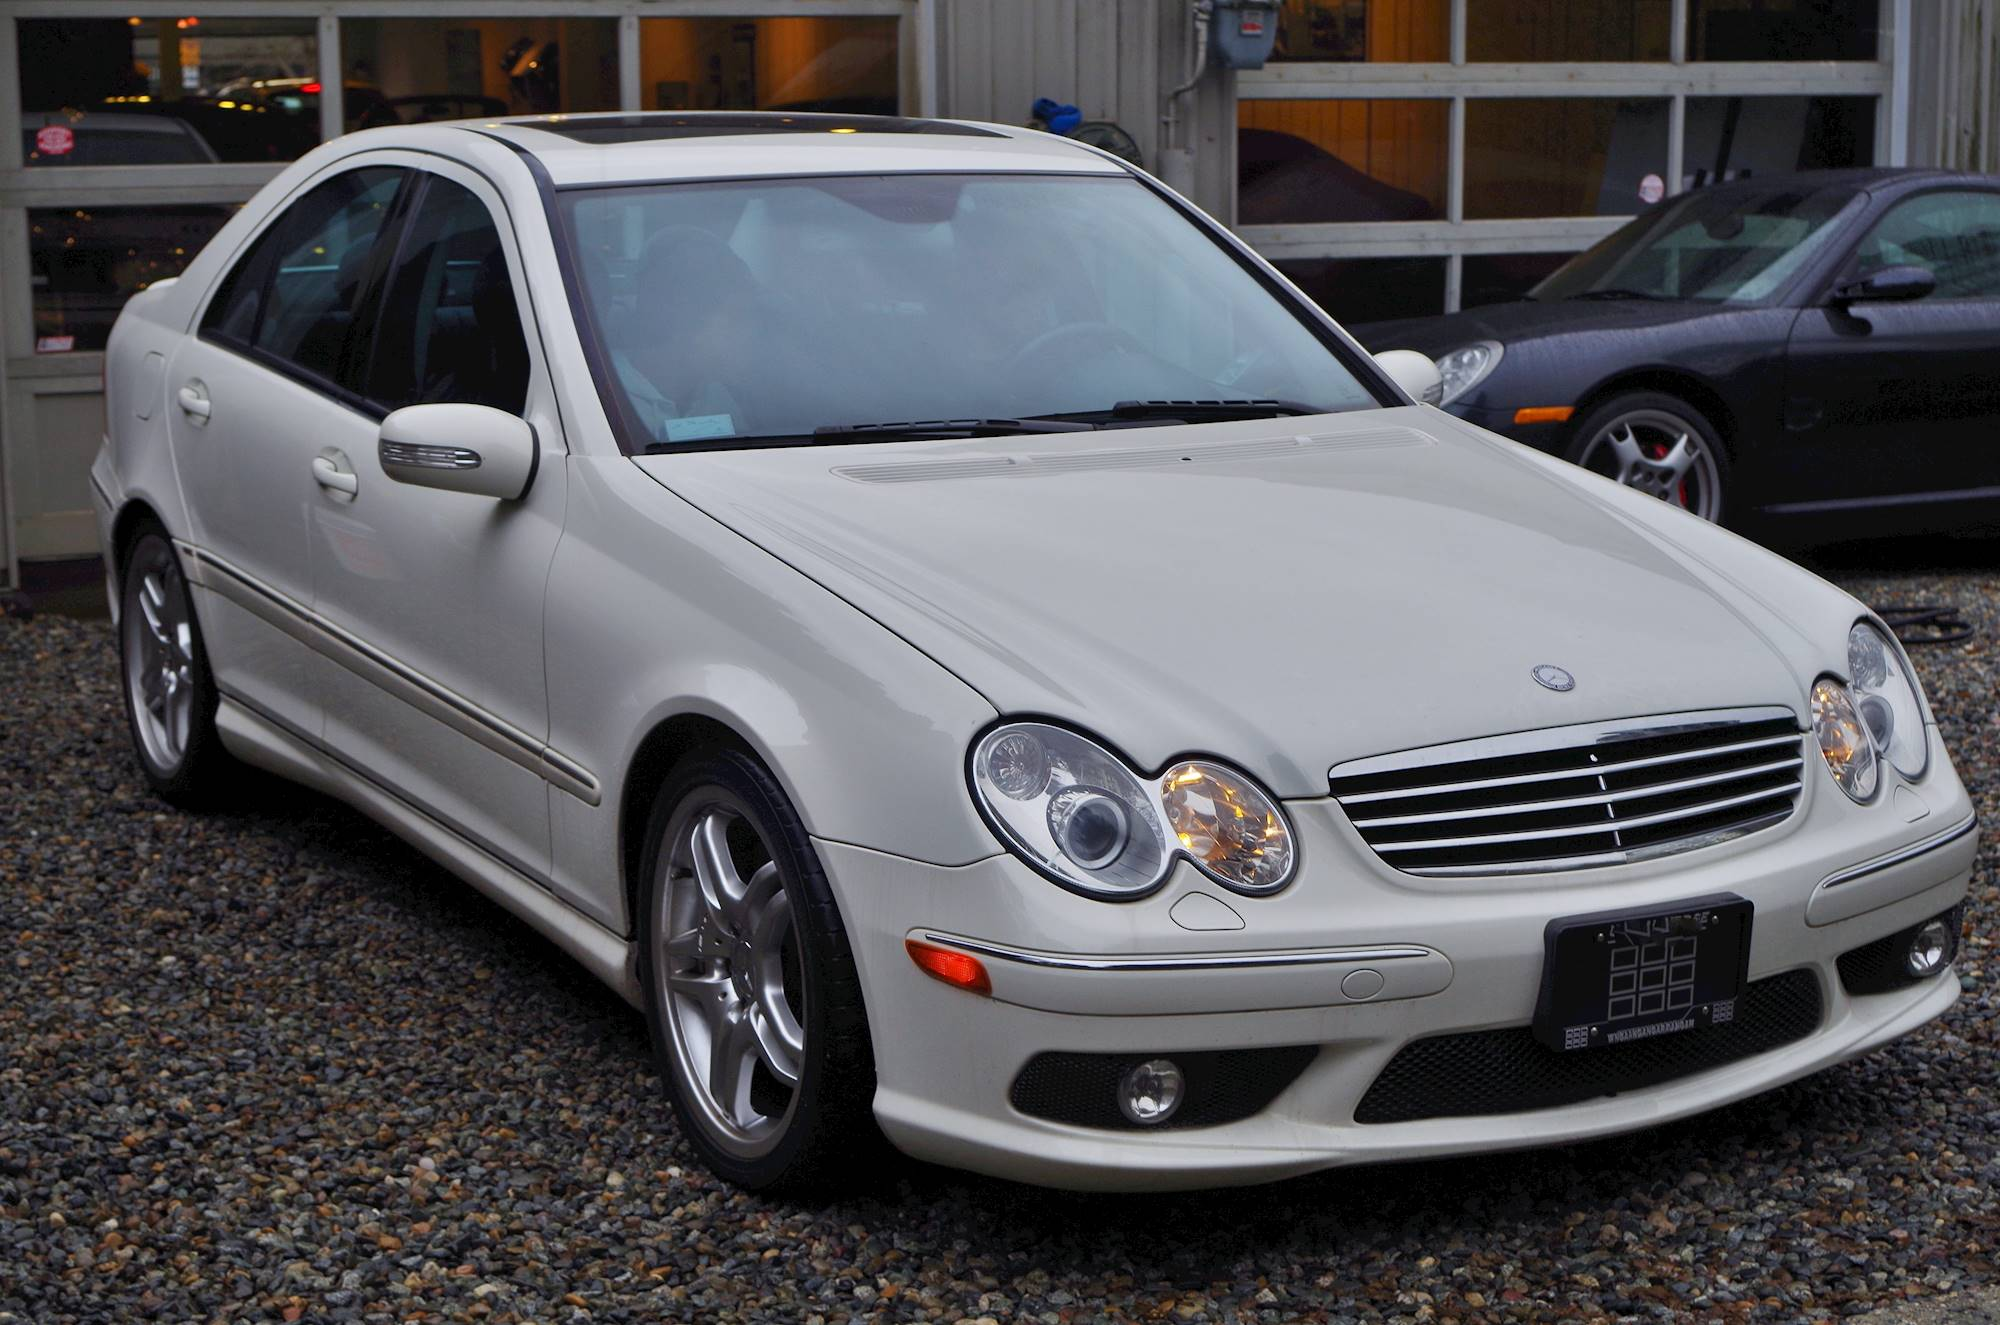 2006 Mercedes-Benz C-Class C230 Sport - Sedan 2.5L V6 Manual